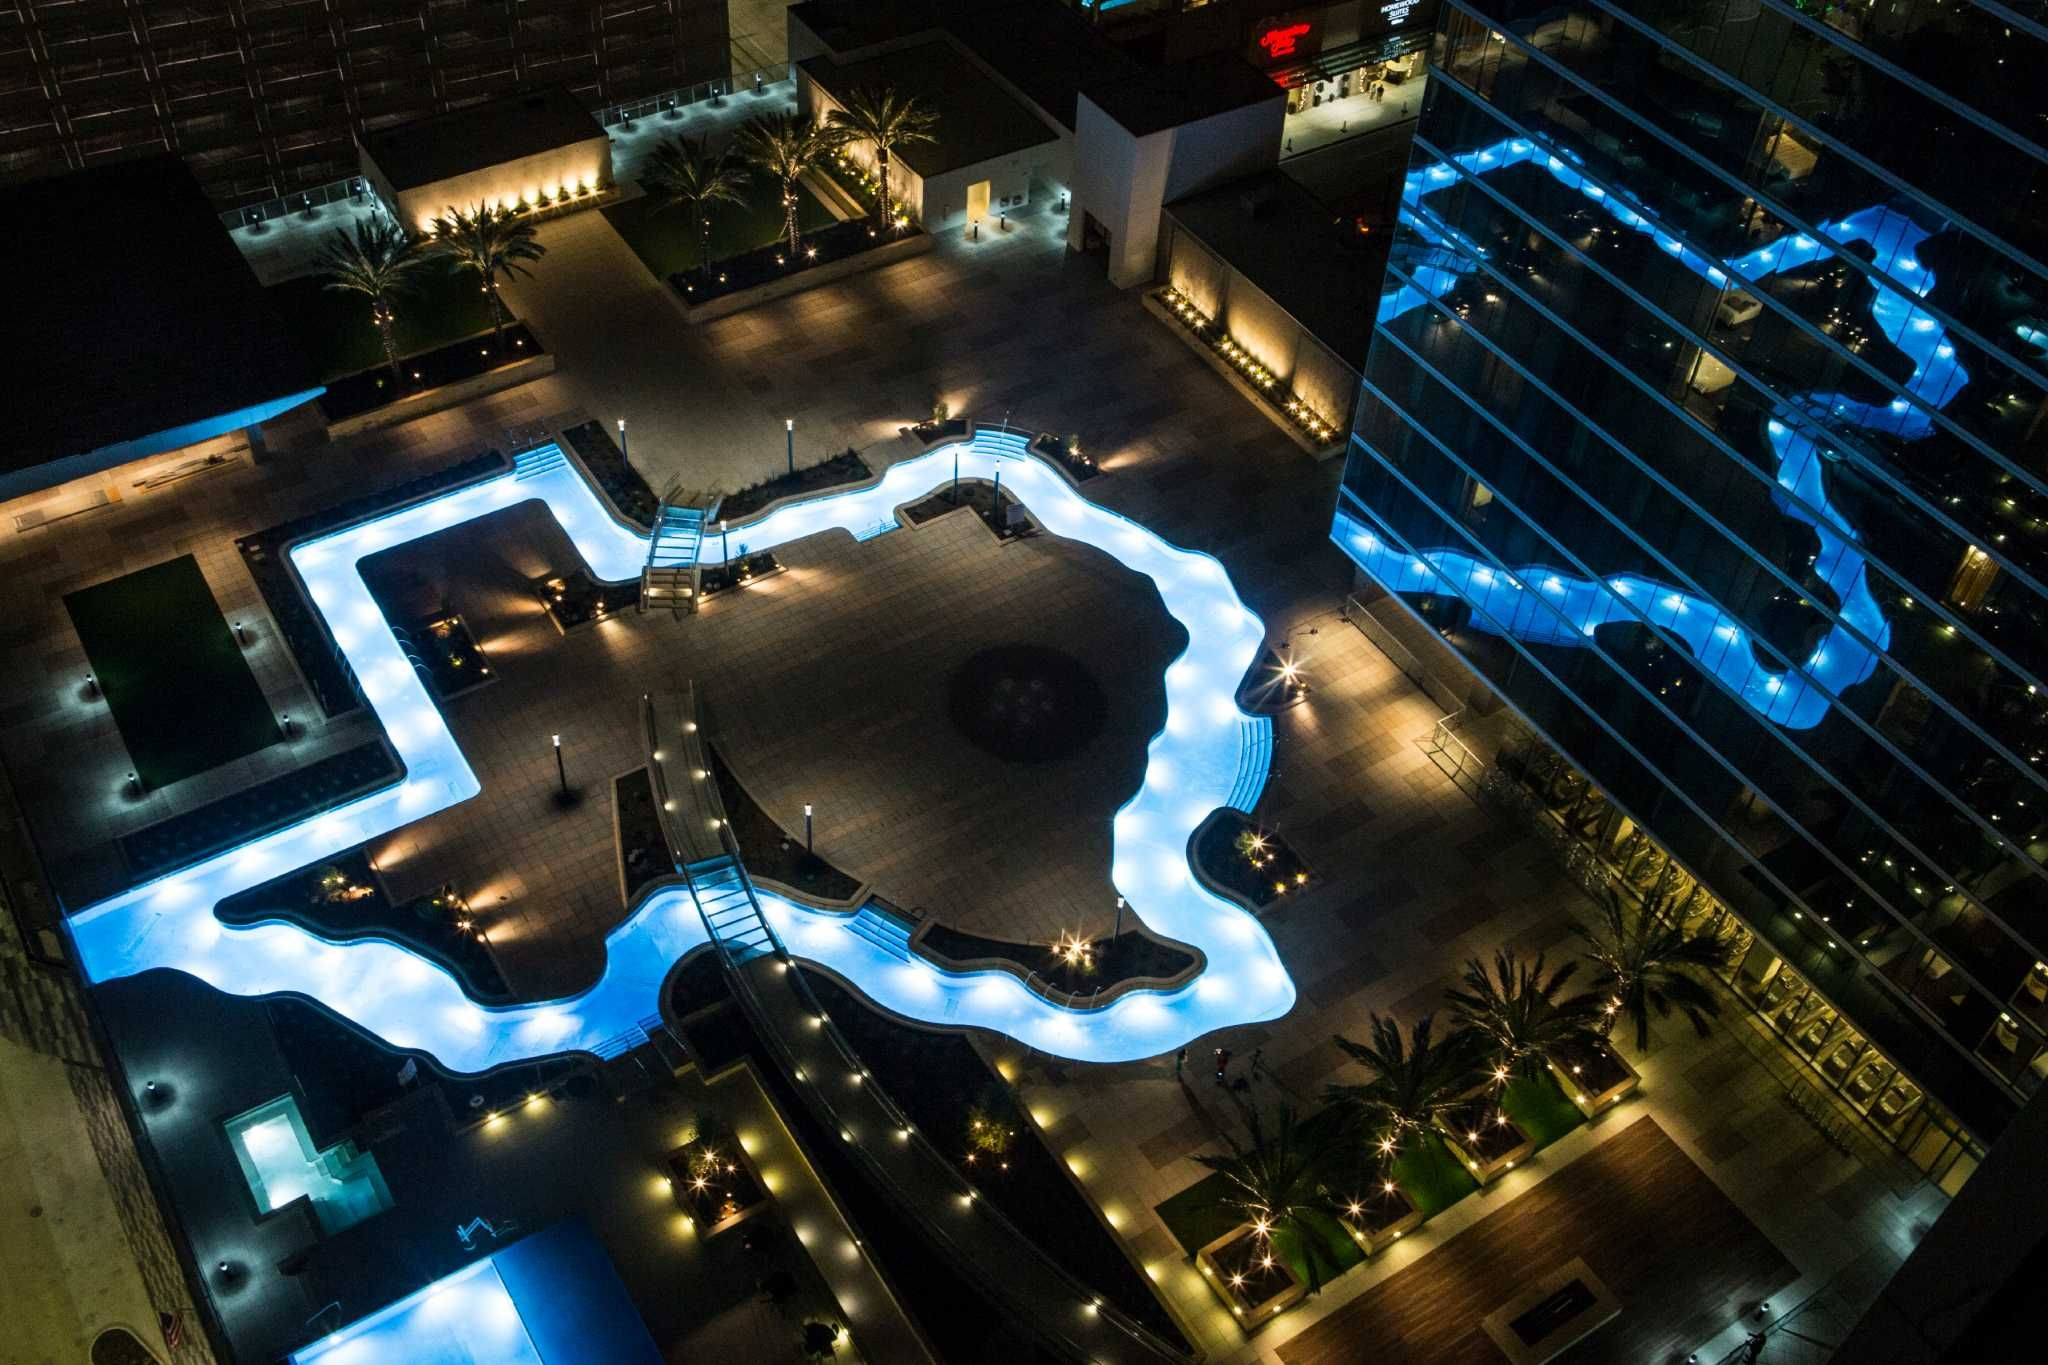 Marriott Marquis Houston Debuts Texas Shaped Pool In Grand Opening Houston Hotels Texas Shaped Marriott